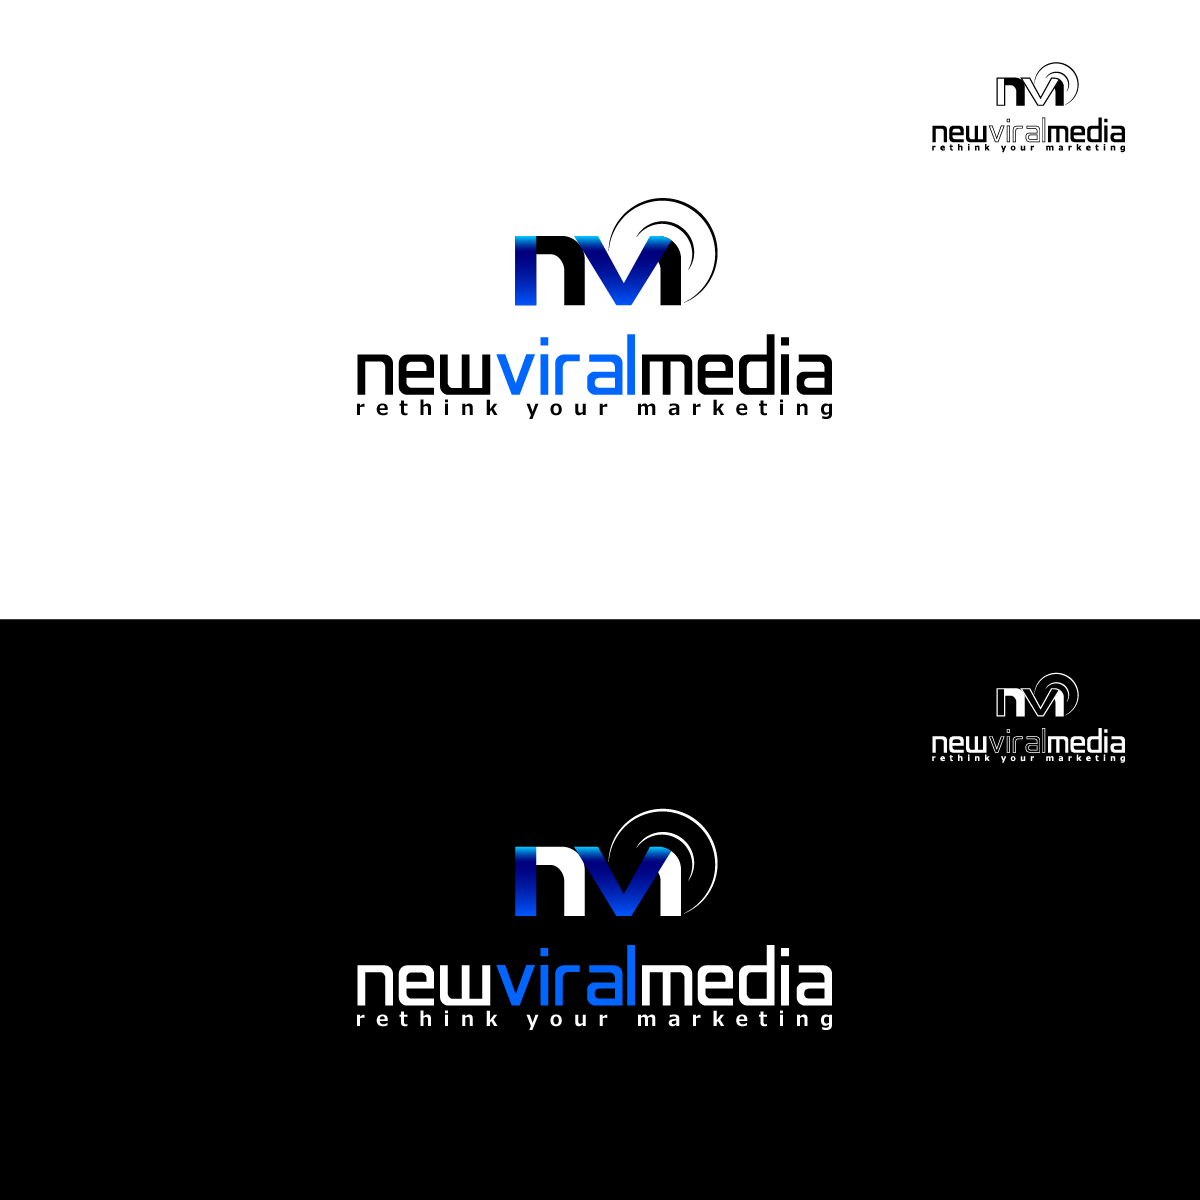 Logo Design by zesthar - Entry No. 60 in the Logo Design Contest New Viral Media Logo.